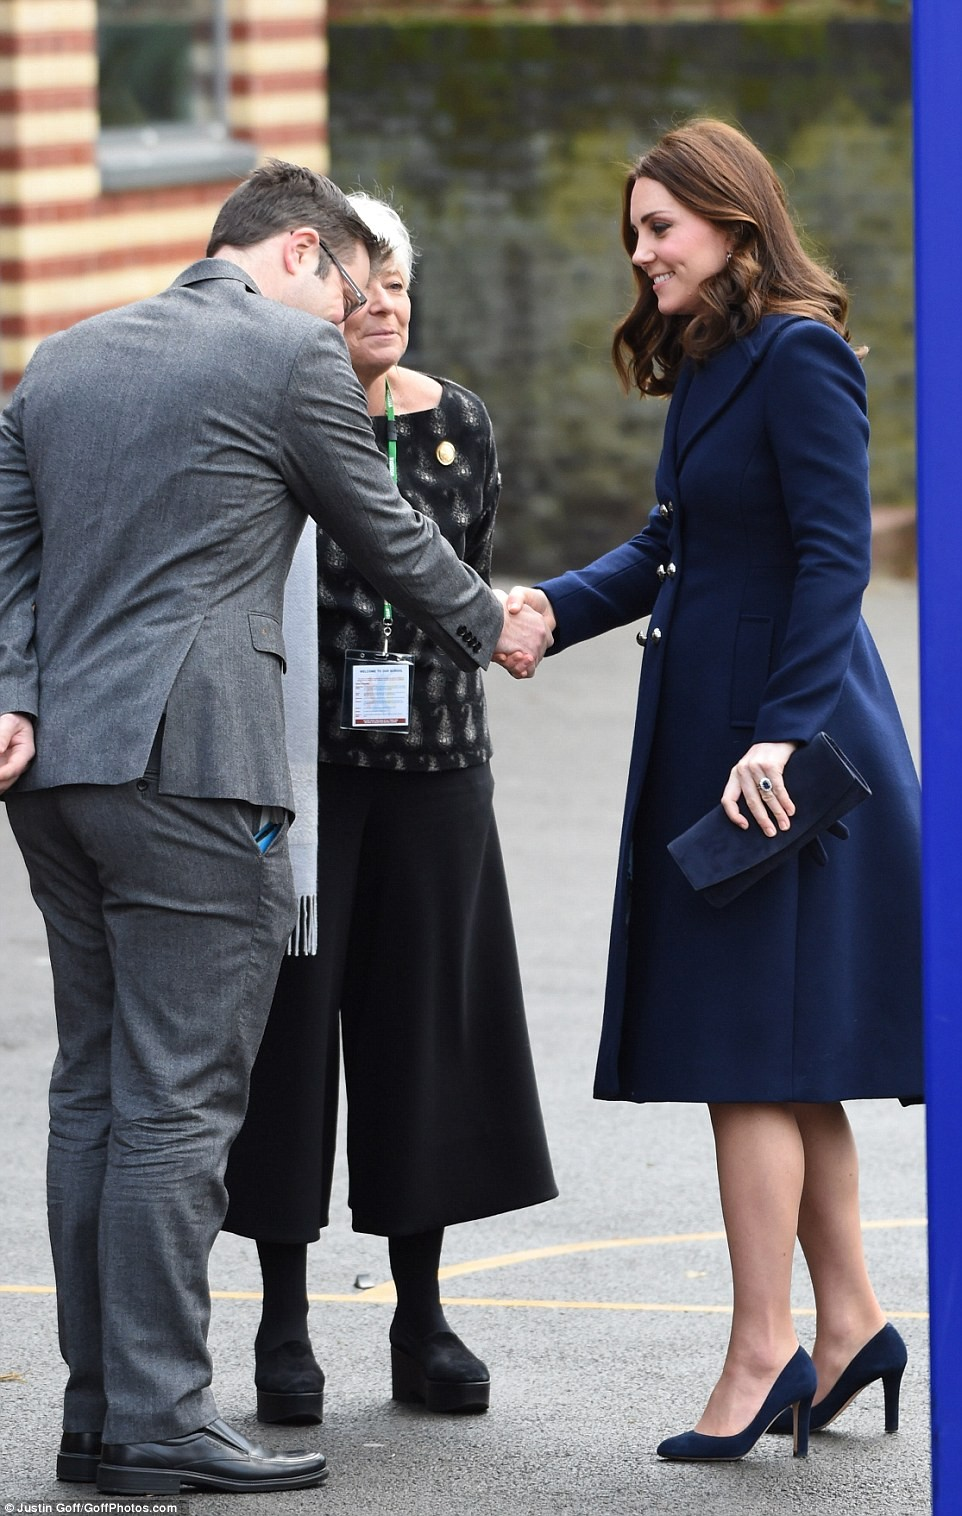 Pregnant Duchess of Cambridge steps out looking stunning in a ?65 maternity dress (Photos)